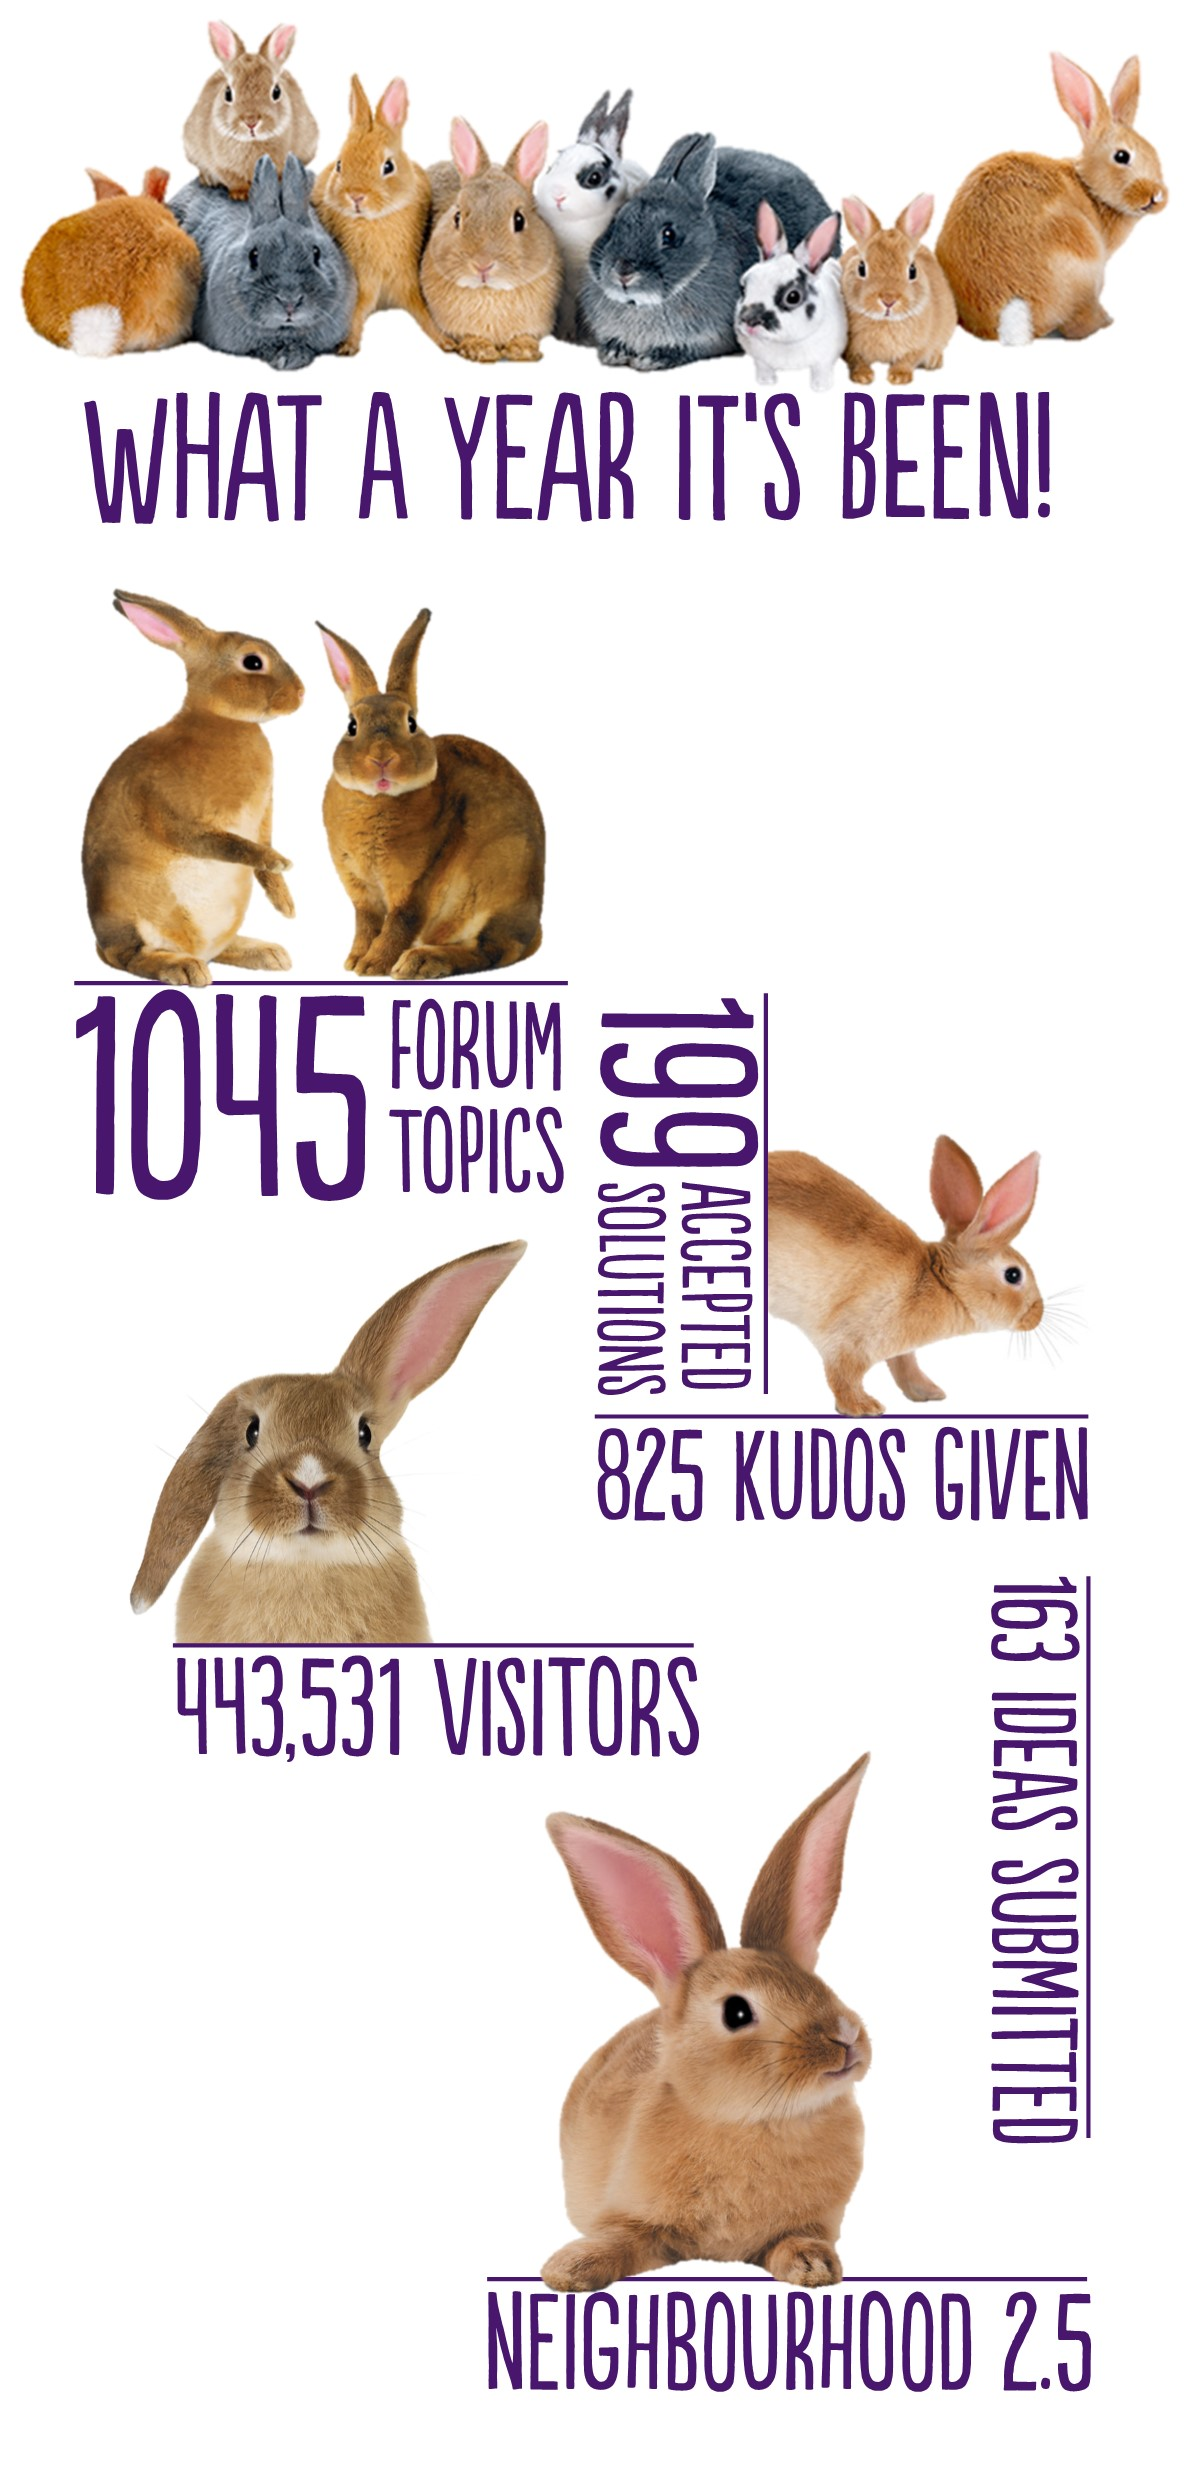 Year 3 Infographic Bunnies 2.jpg